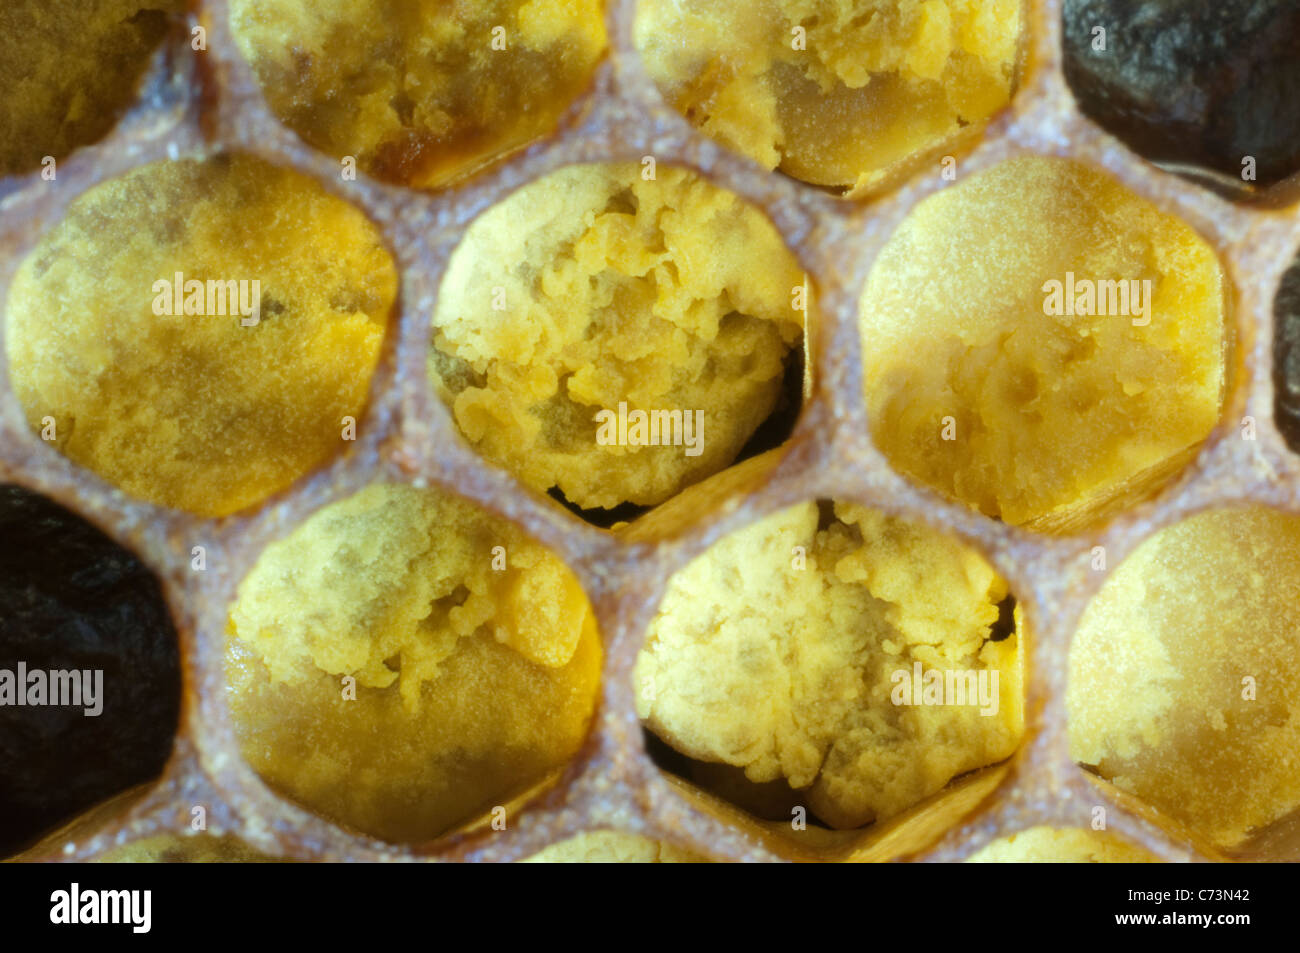 European Honey Bee, Western Honey Bee (Apis mellifera, Apis mellifica). Close-up of cells filled with pollen. - Stock Image